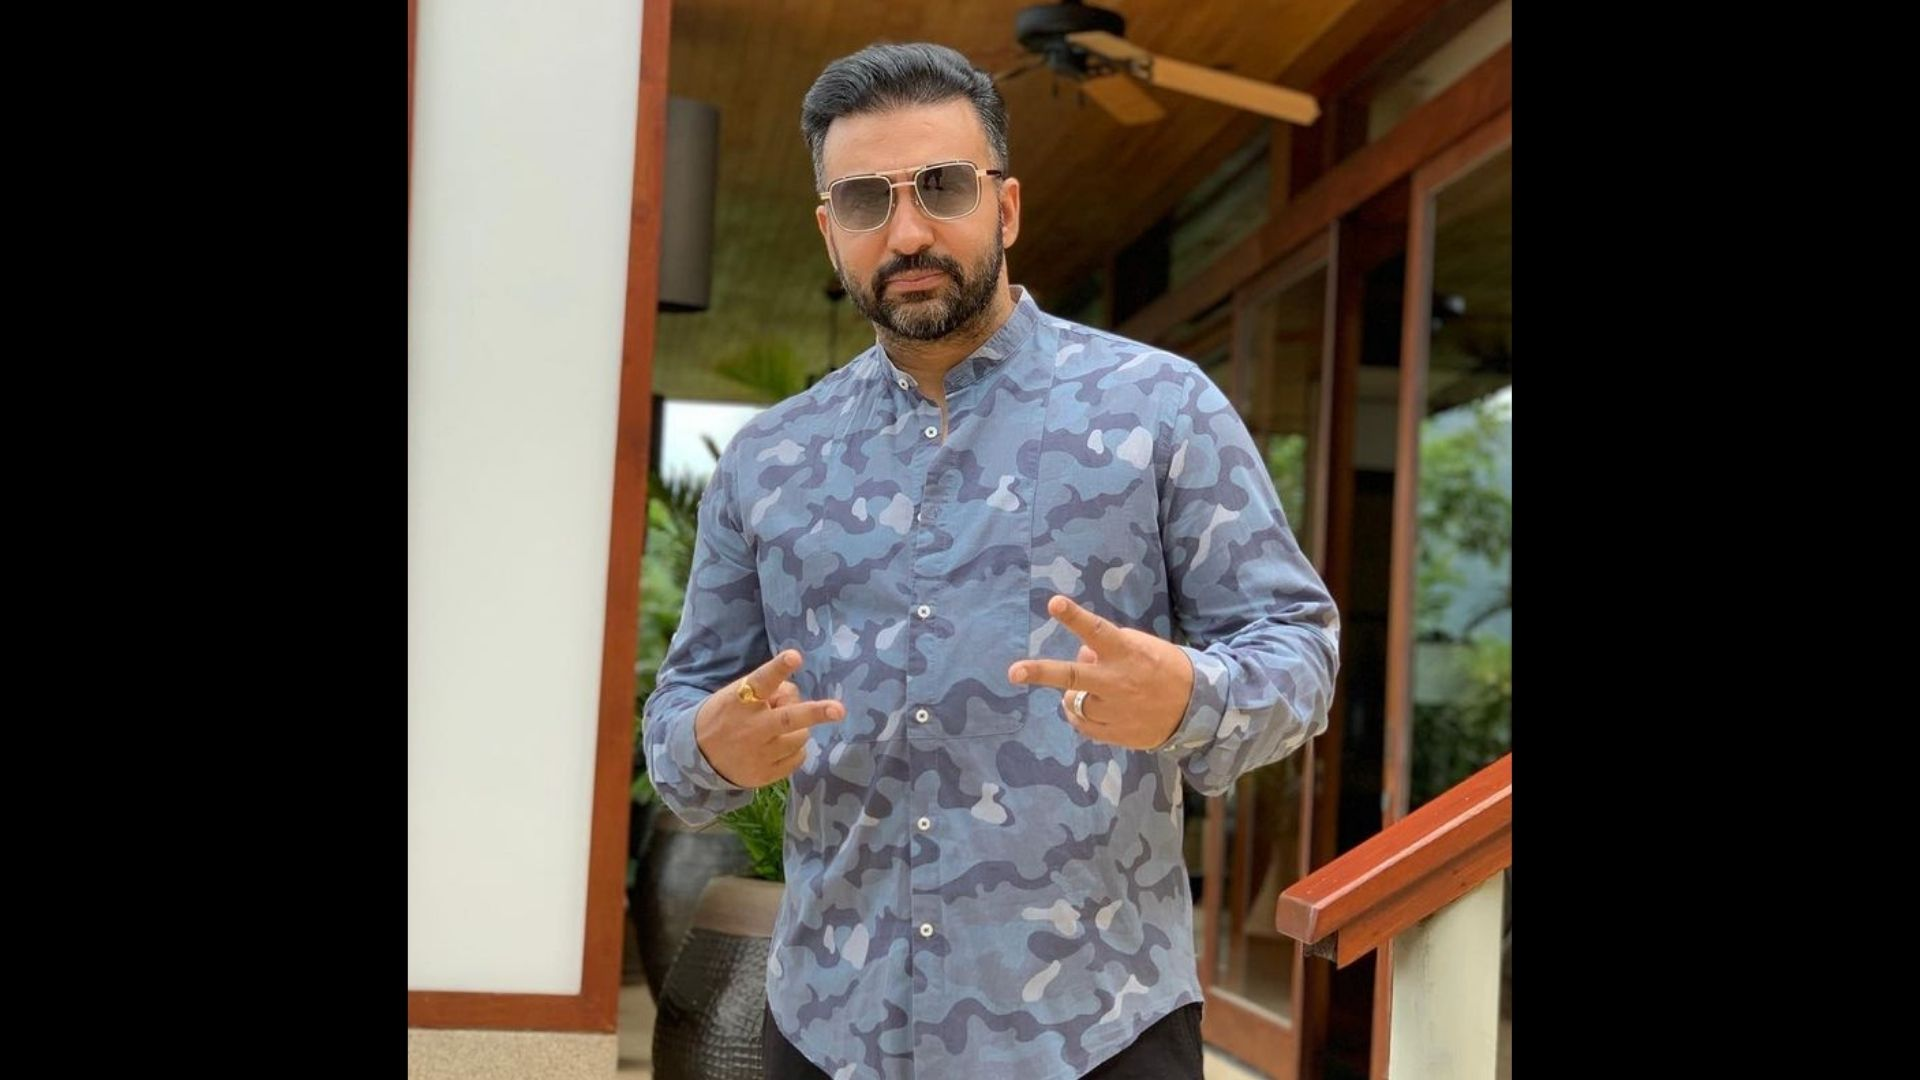 Raj Kundra Planned To Sell 119 Porn Videos For Rs 9 Crore; Porn Videos Found In His Electronic Devices: Mumbai Police